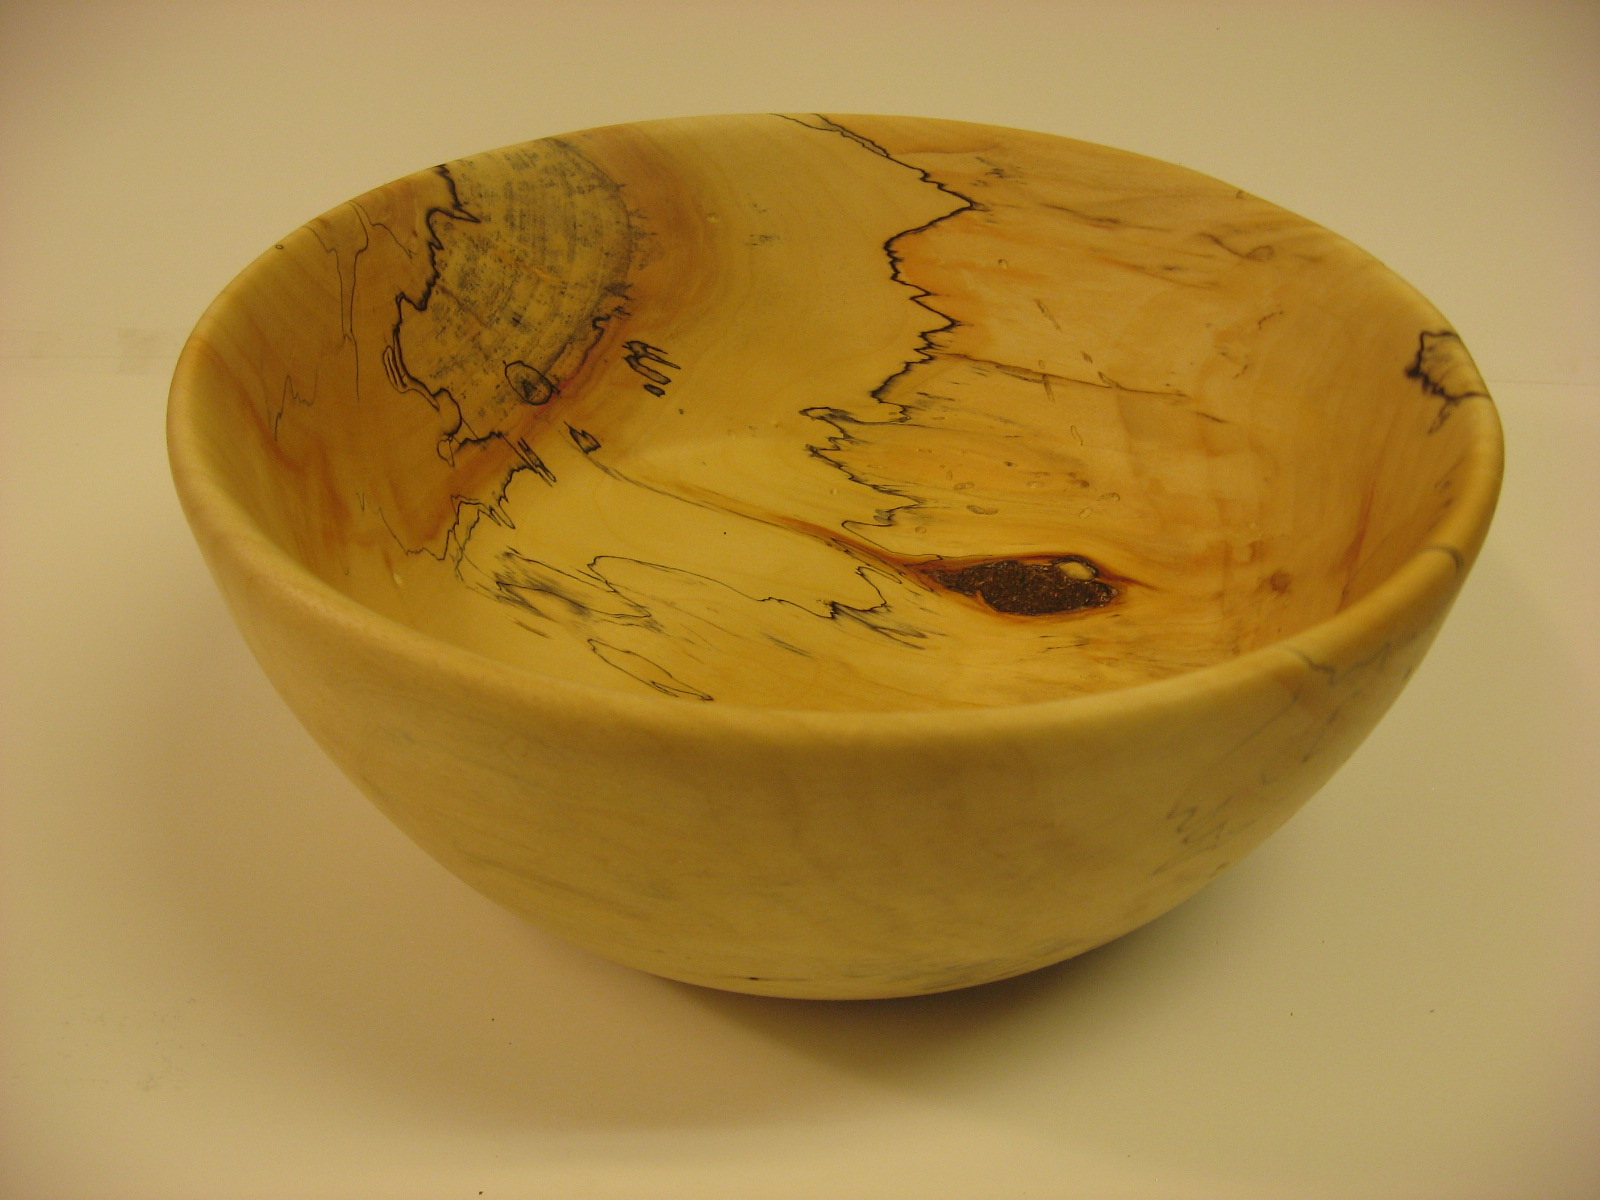 Natural Turnings